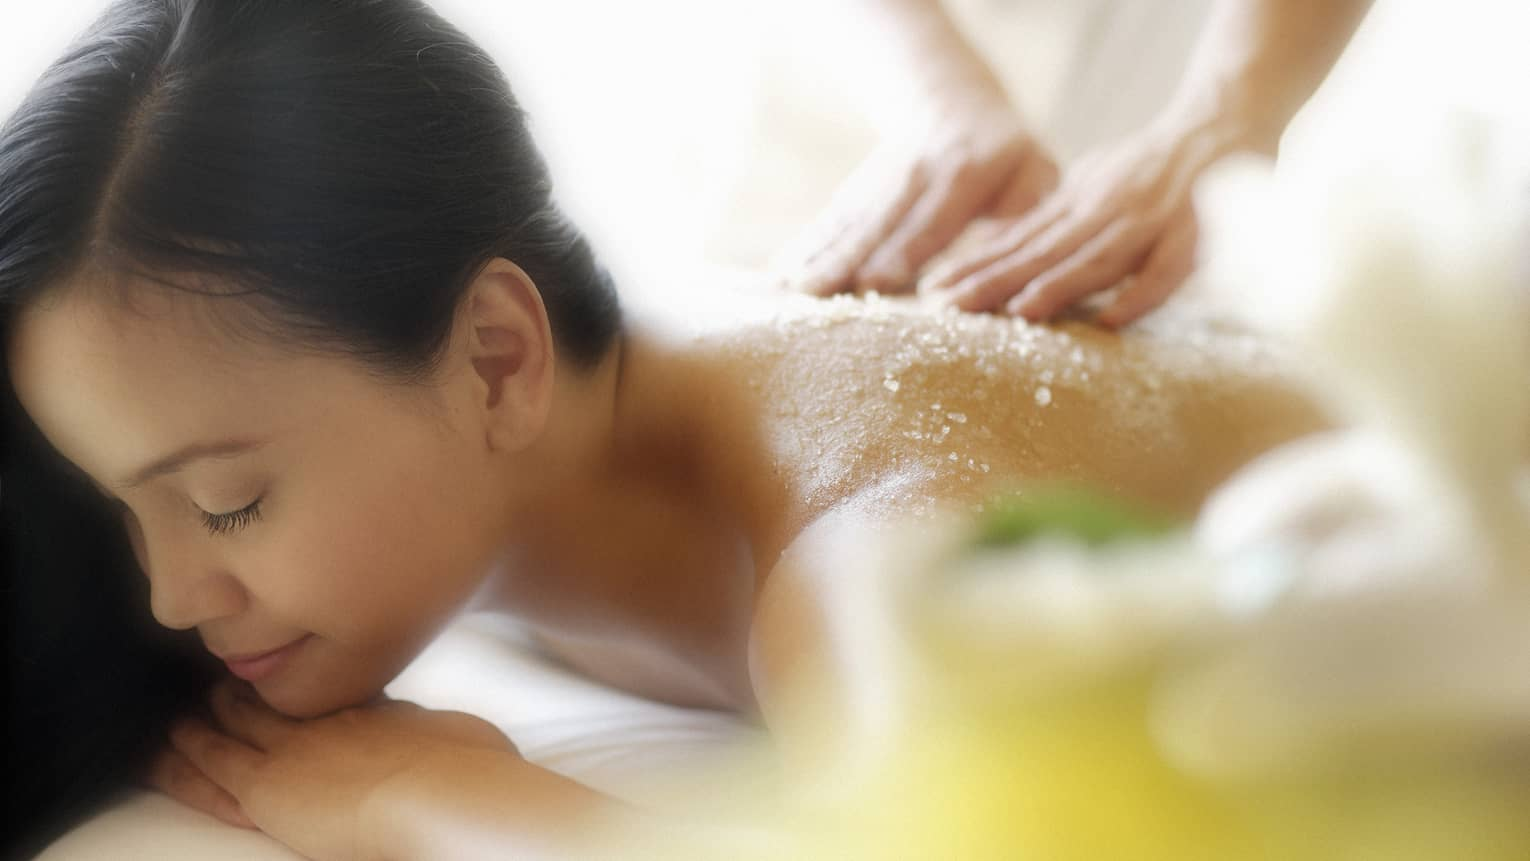 Woman lying down with eyes closed as hands massage salt scrub into shoulders